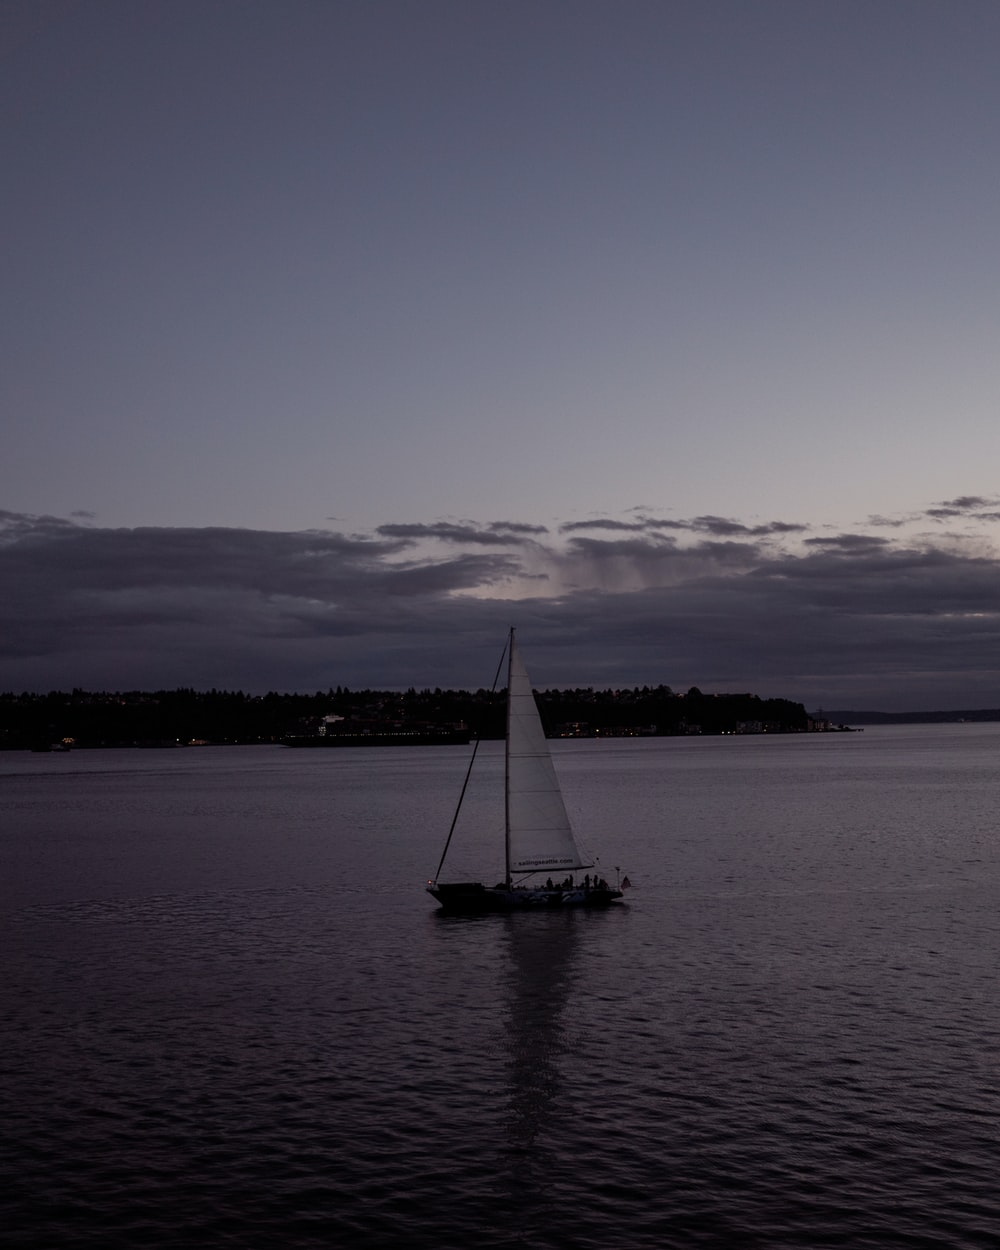 white sailboat on calm water during daytime